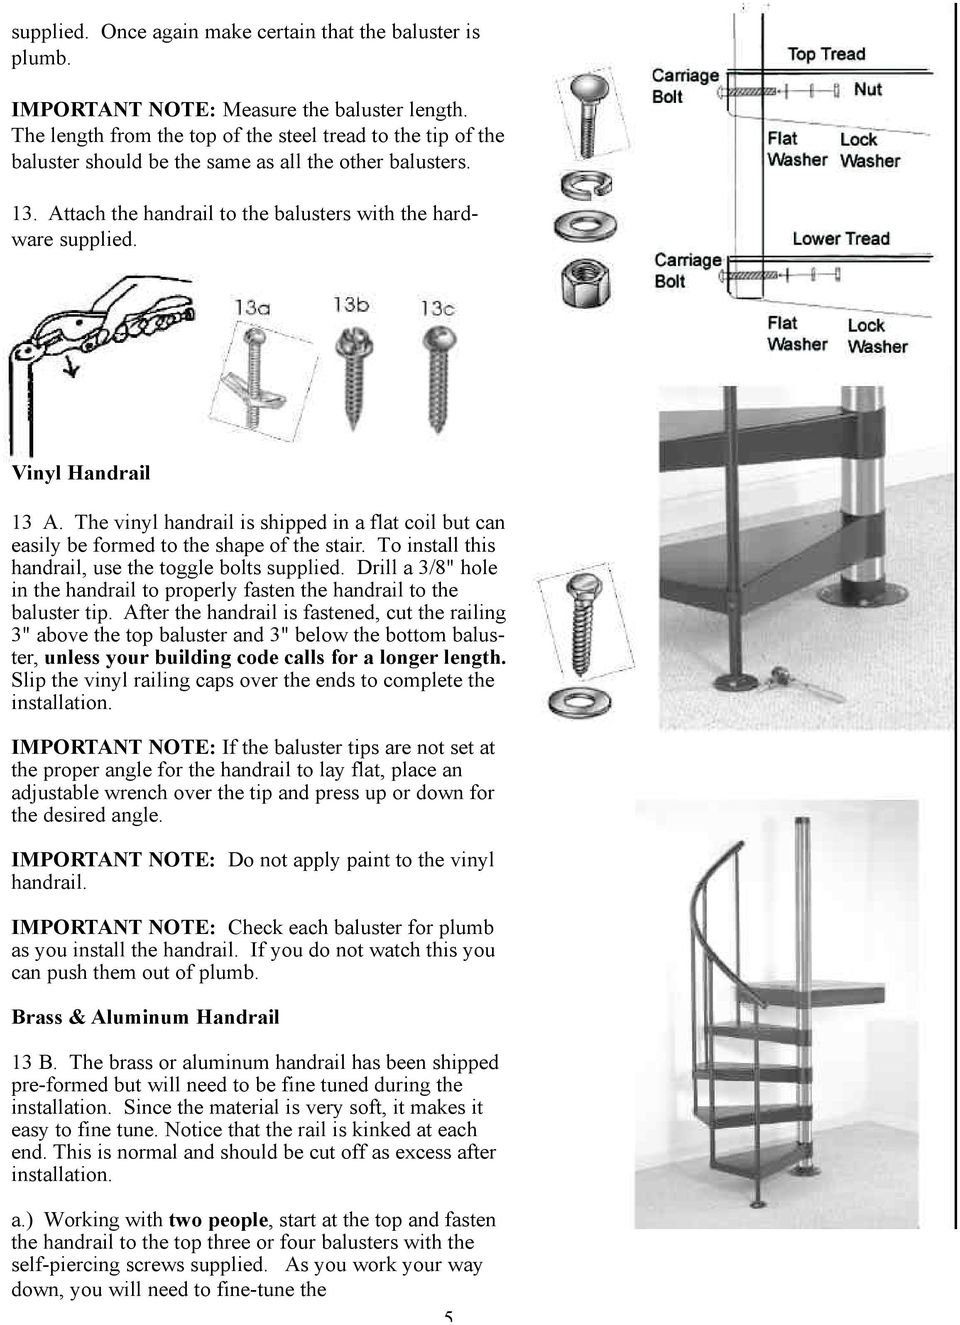 Vinyl Handrail 13 A. The vinyl handrail is shipped in a flat coil but can easily be formed to the shape of the stair. To install this handrail, use the toggle bolts supplied.